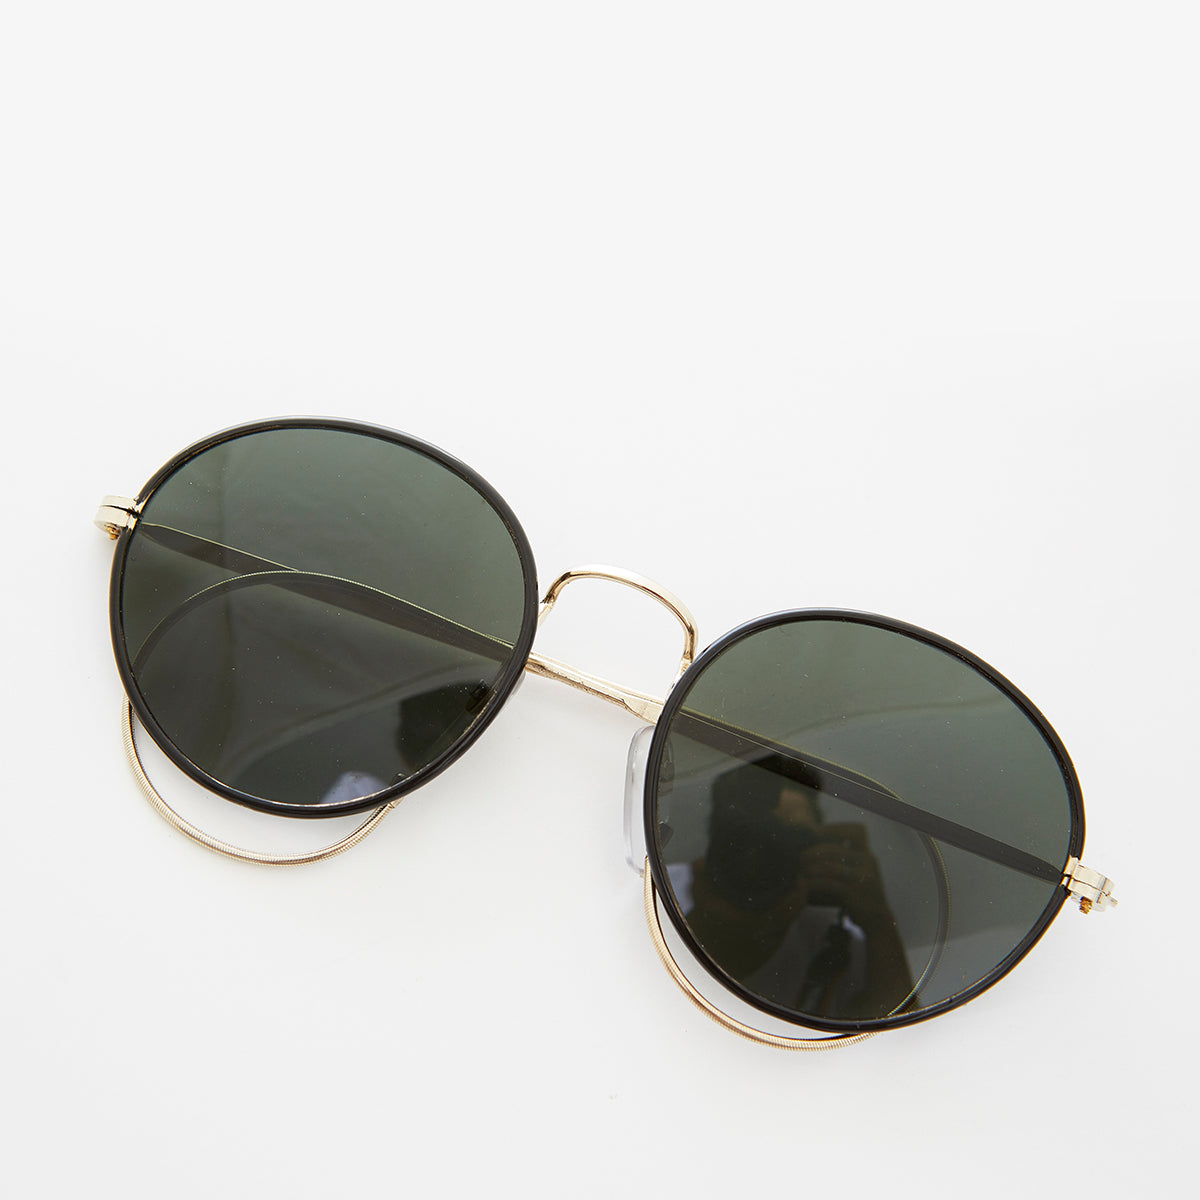 Round Preppy Sunglass with Cable Temples